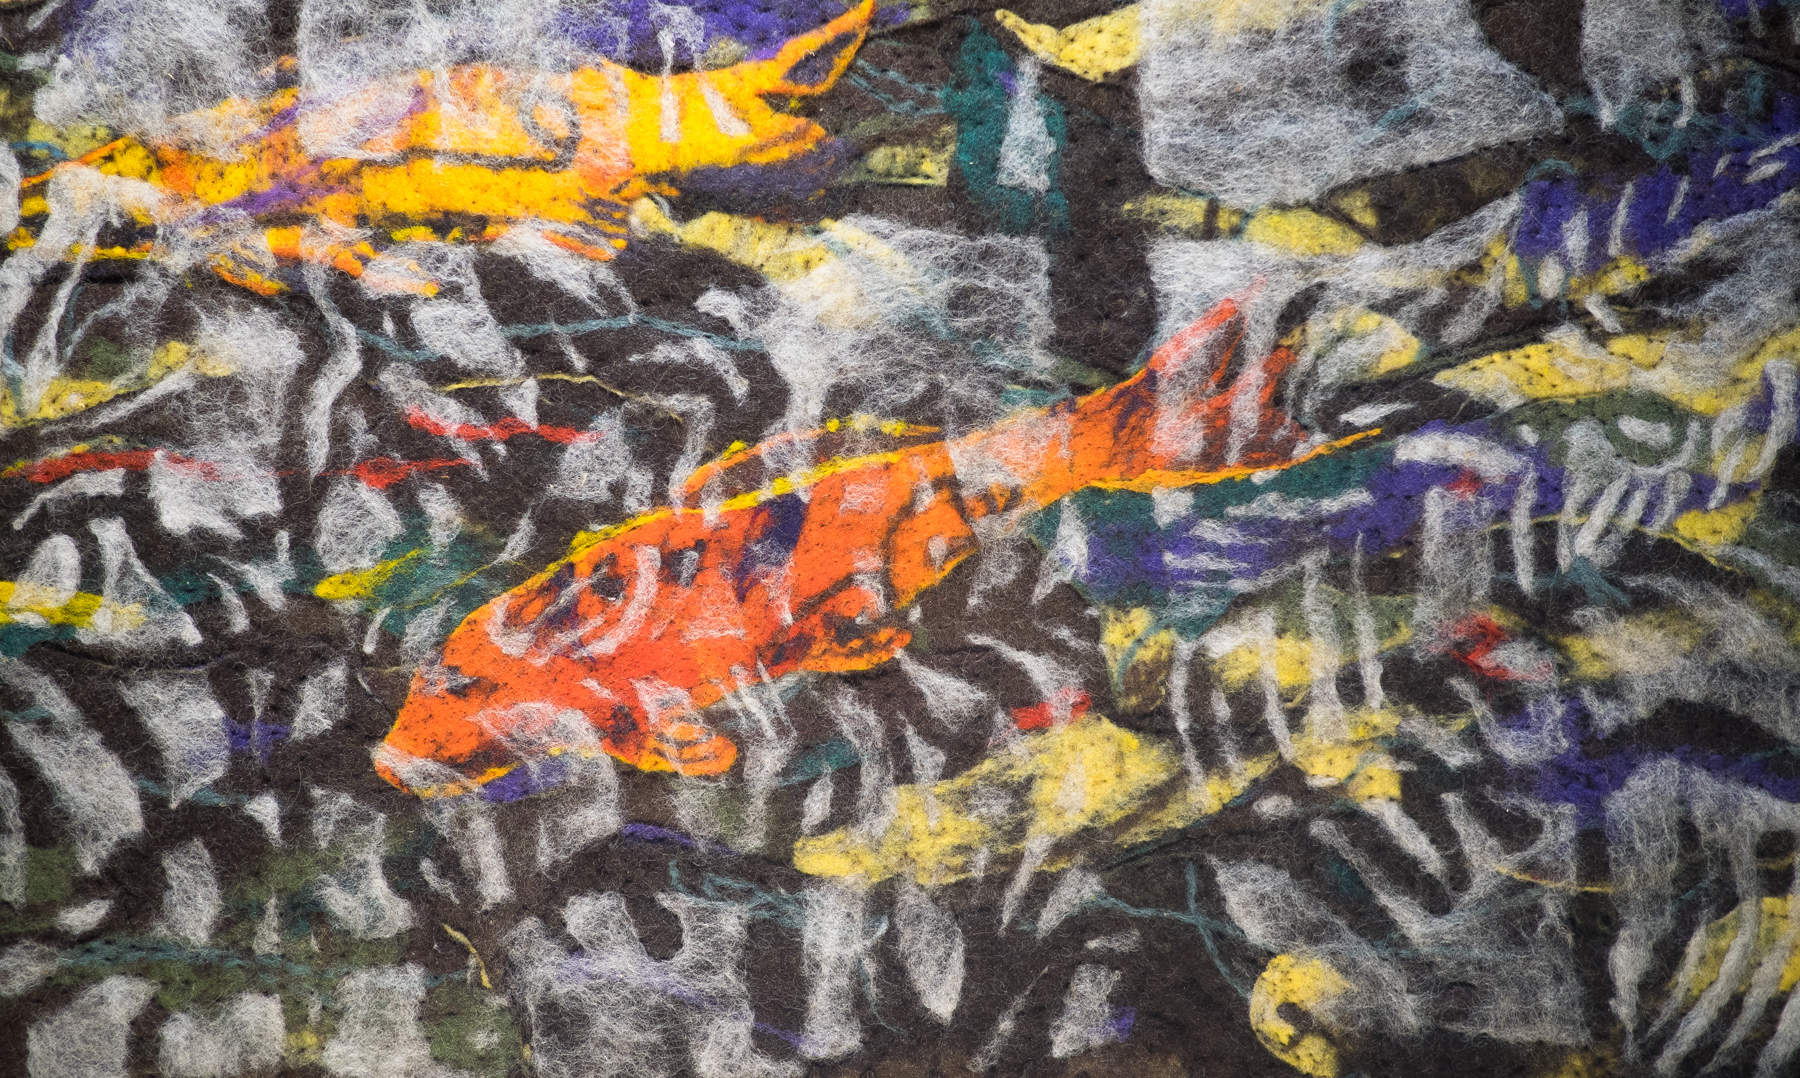 2015 Beneath the Long Grass: The Constructed Canvas Reflected Koi - detail, Land in CloseUp Series